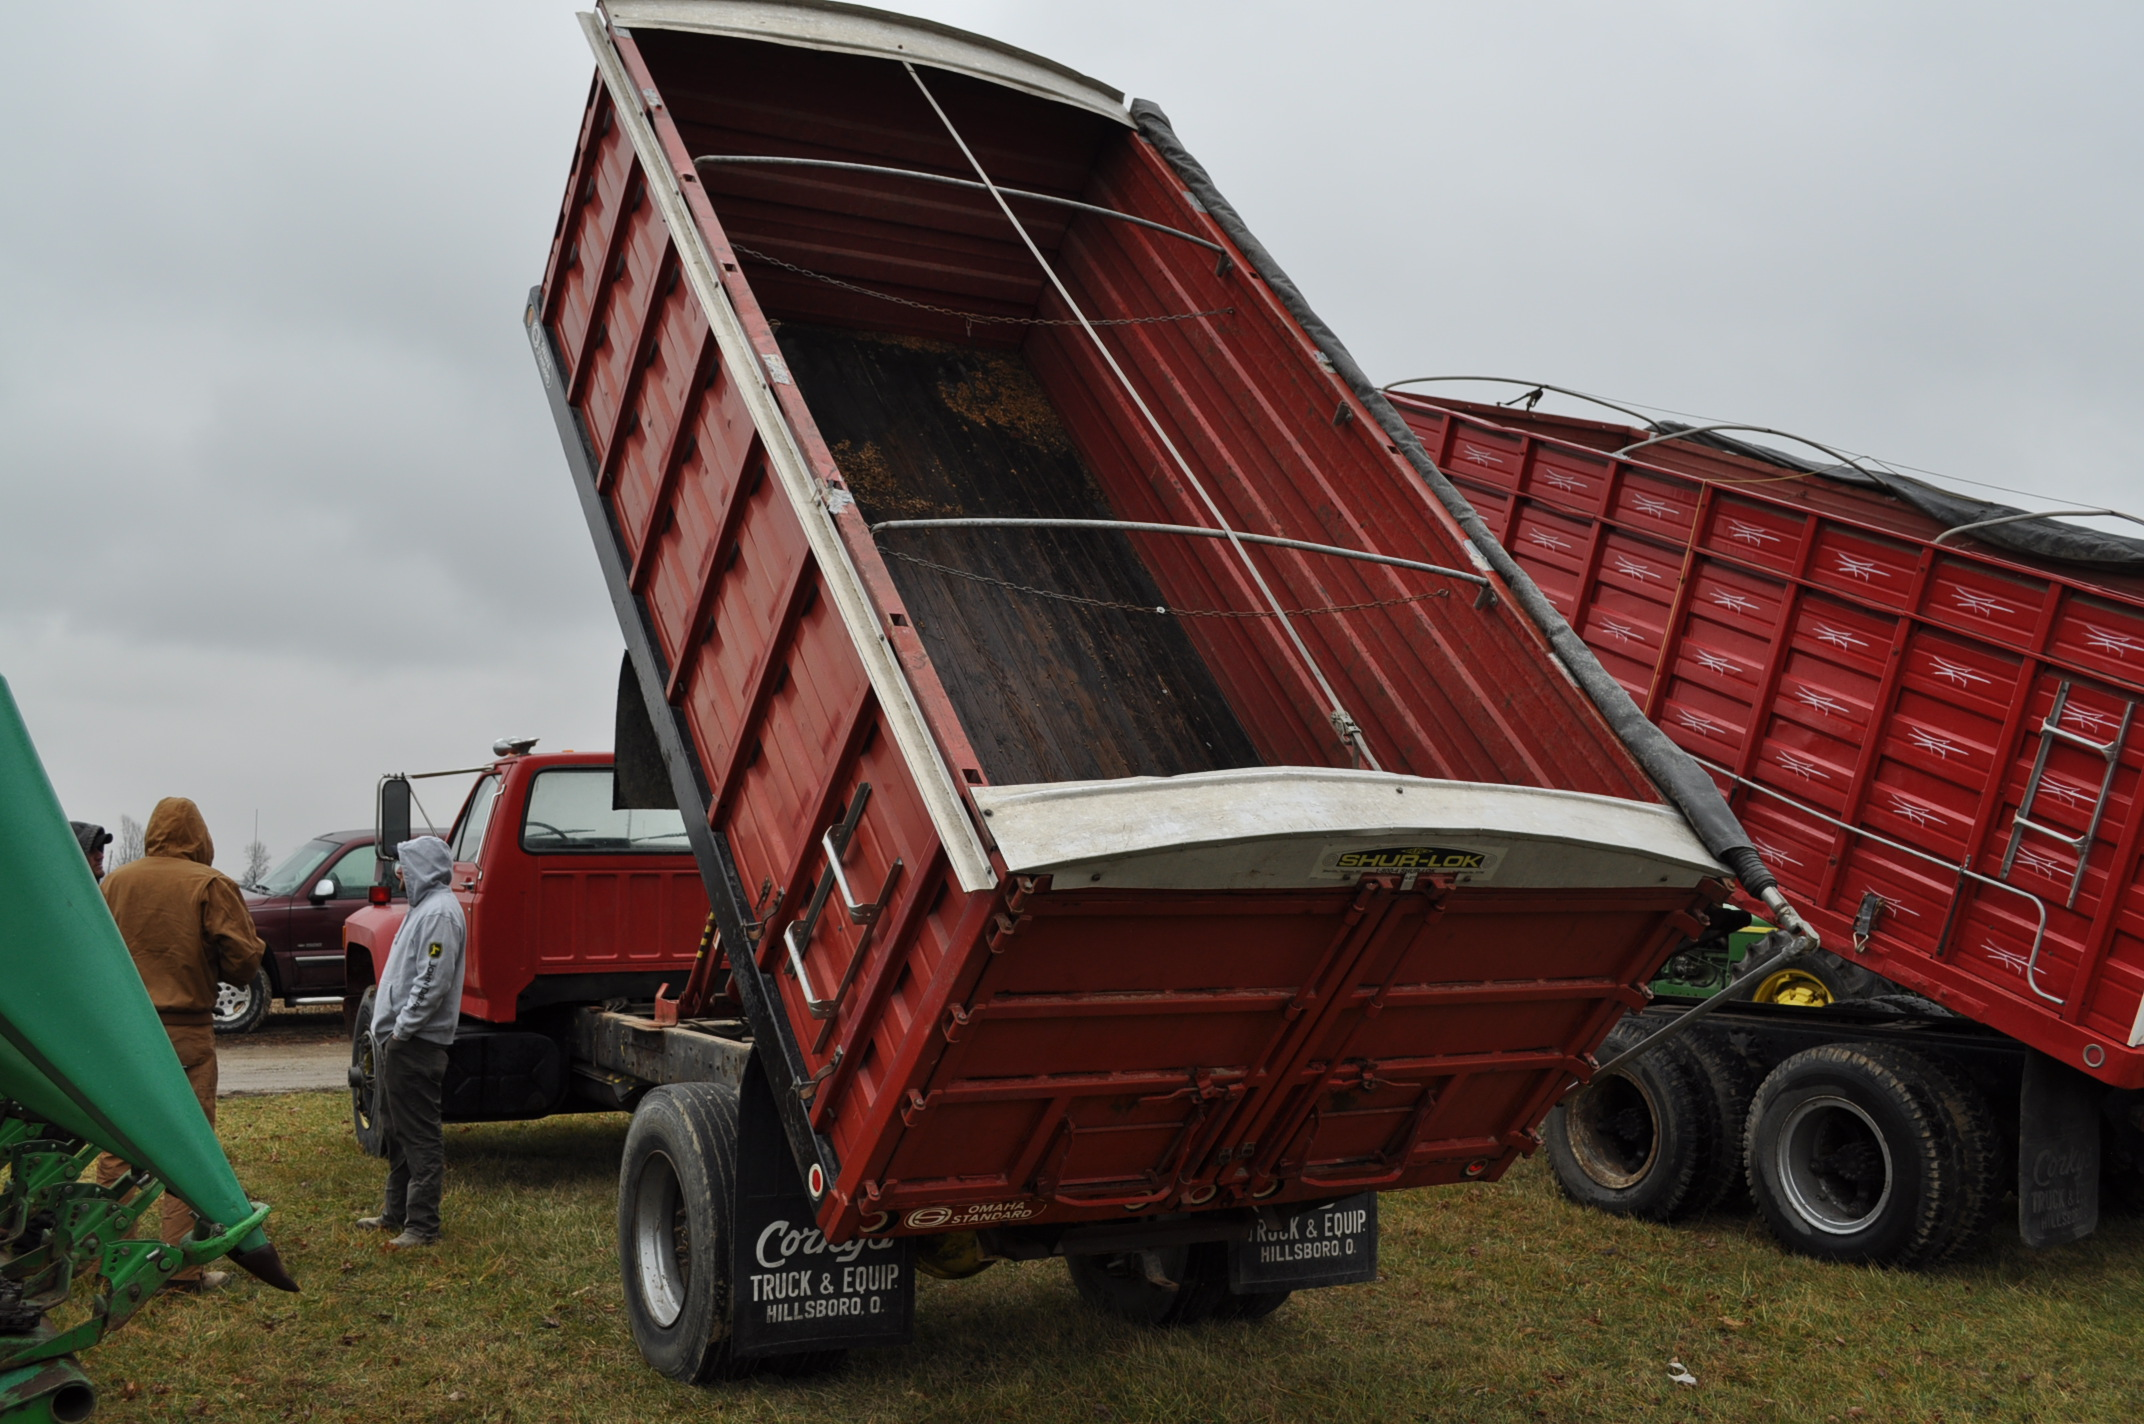 1988 Ford F800 grain truck, single axle, 427 V-8, auto, 11 R 22.5 tires, 16' Omaha Standard bed, - Image 2 of 17